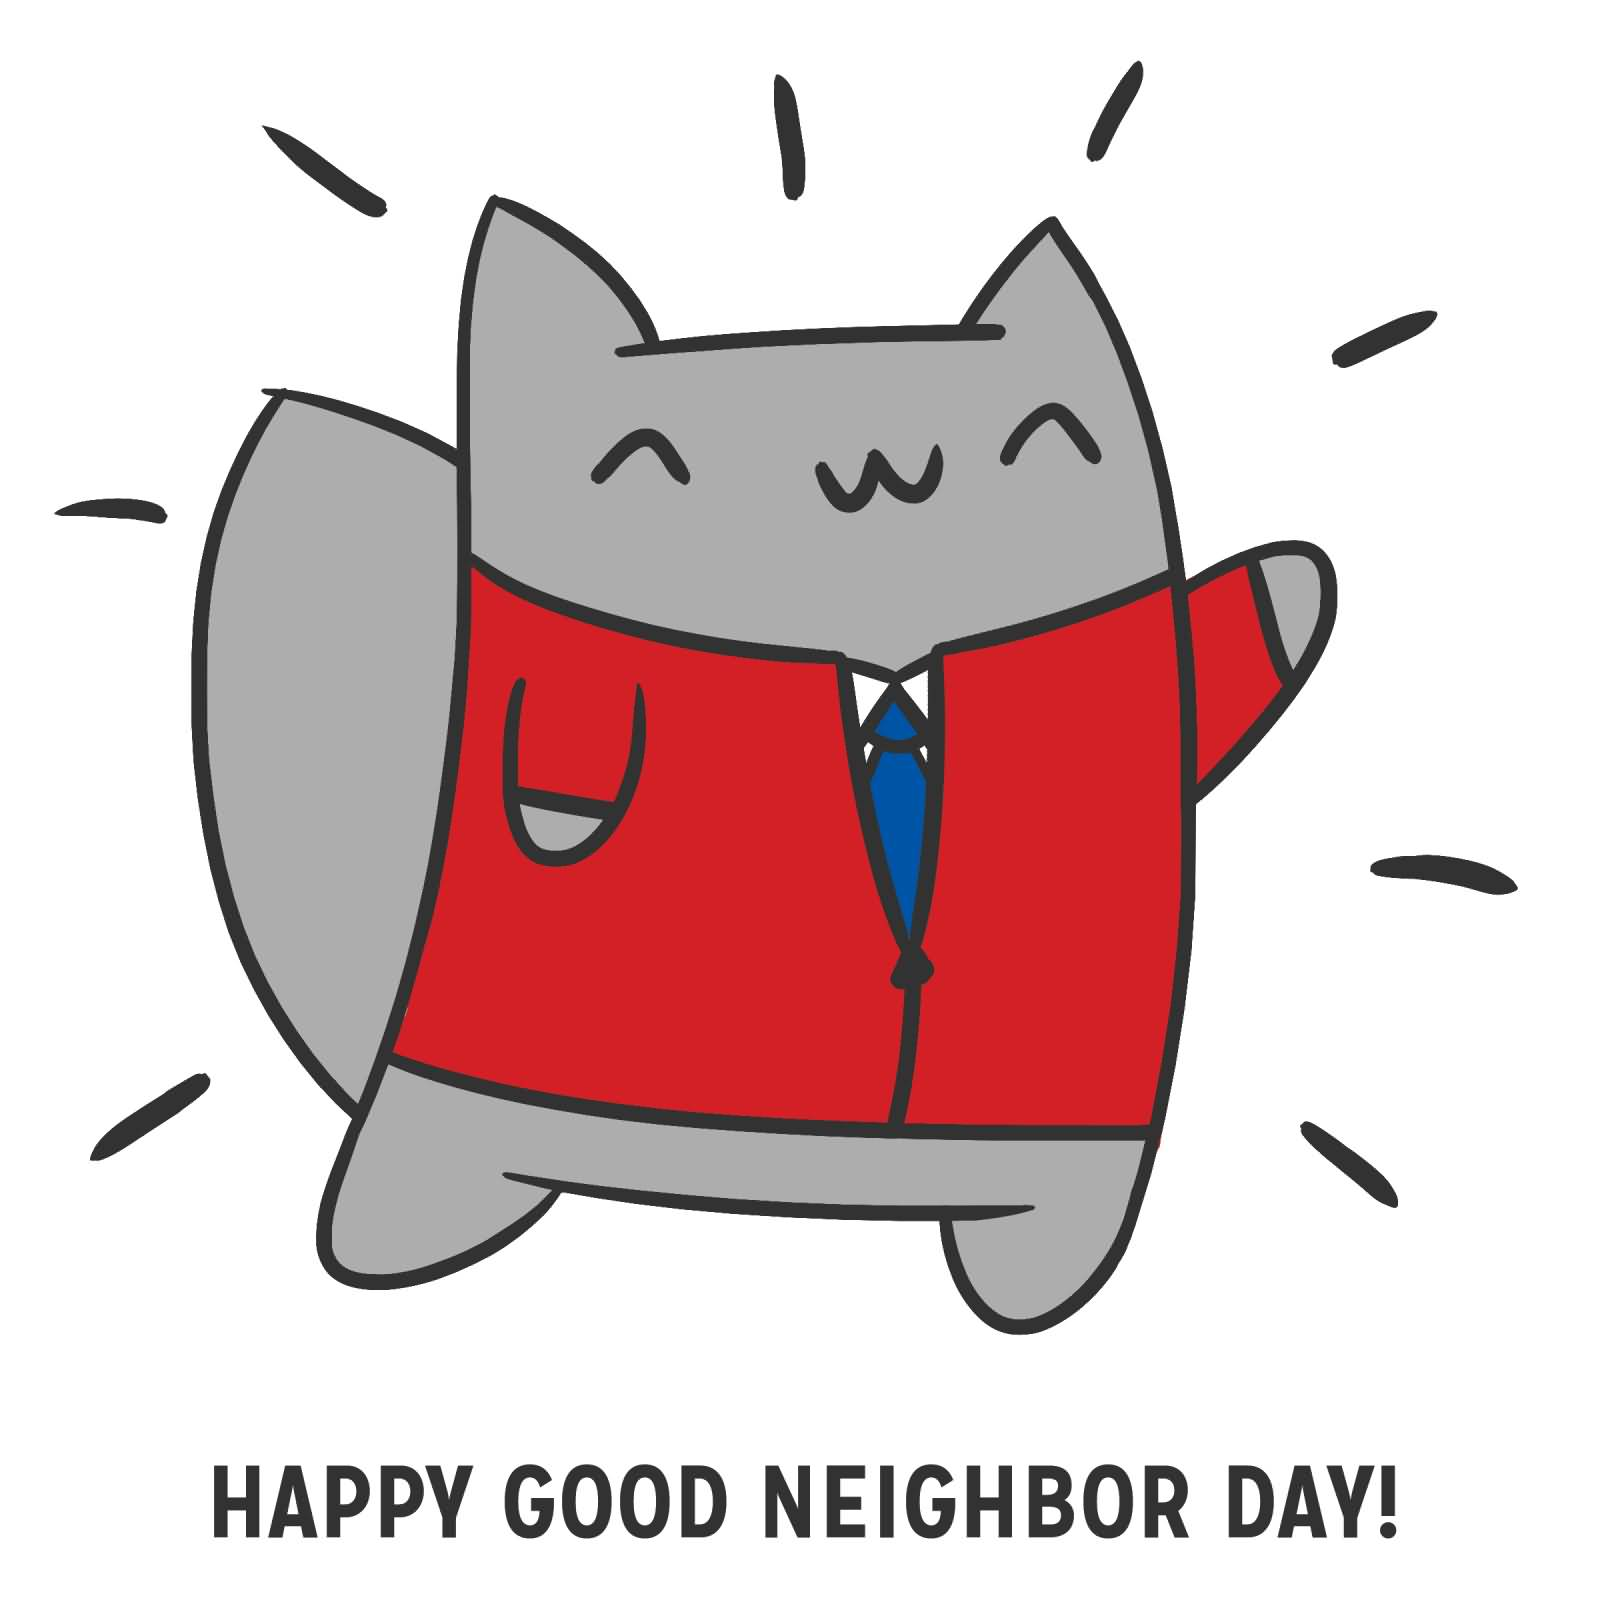 20 Latest Good Neighbor Day Greeting Pictures And Images